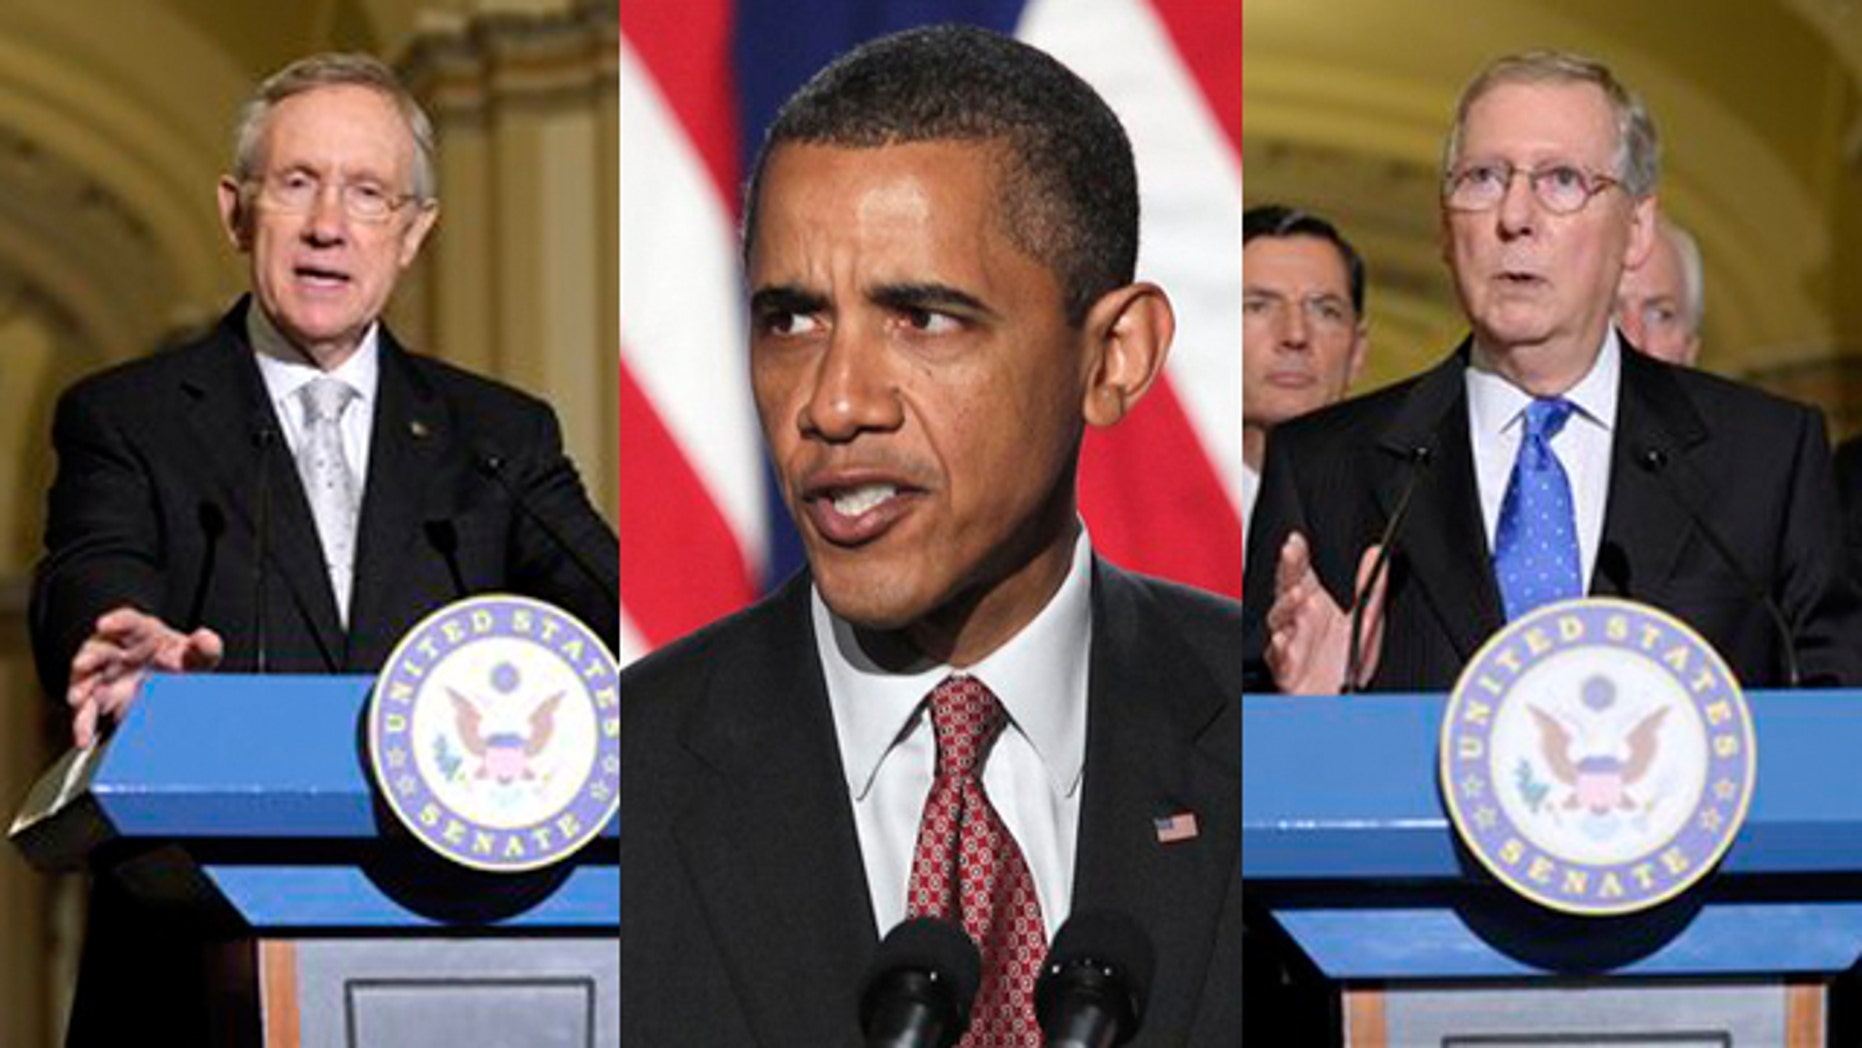 Shown here are Senate Democratic Leader Harry Reid, left, President Obama and Senate Republican Leader Mitch McConnell.